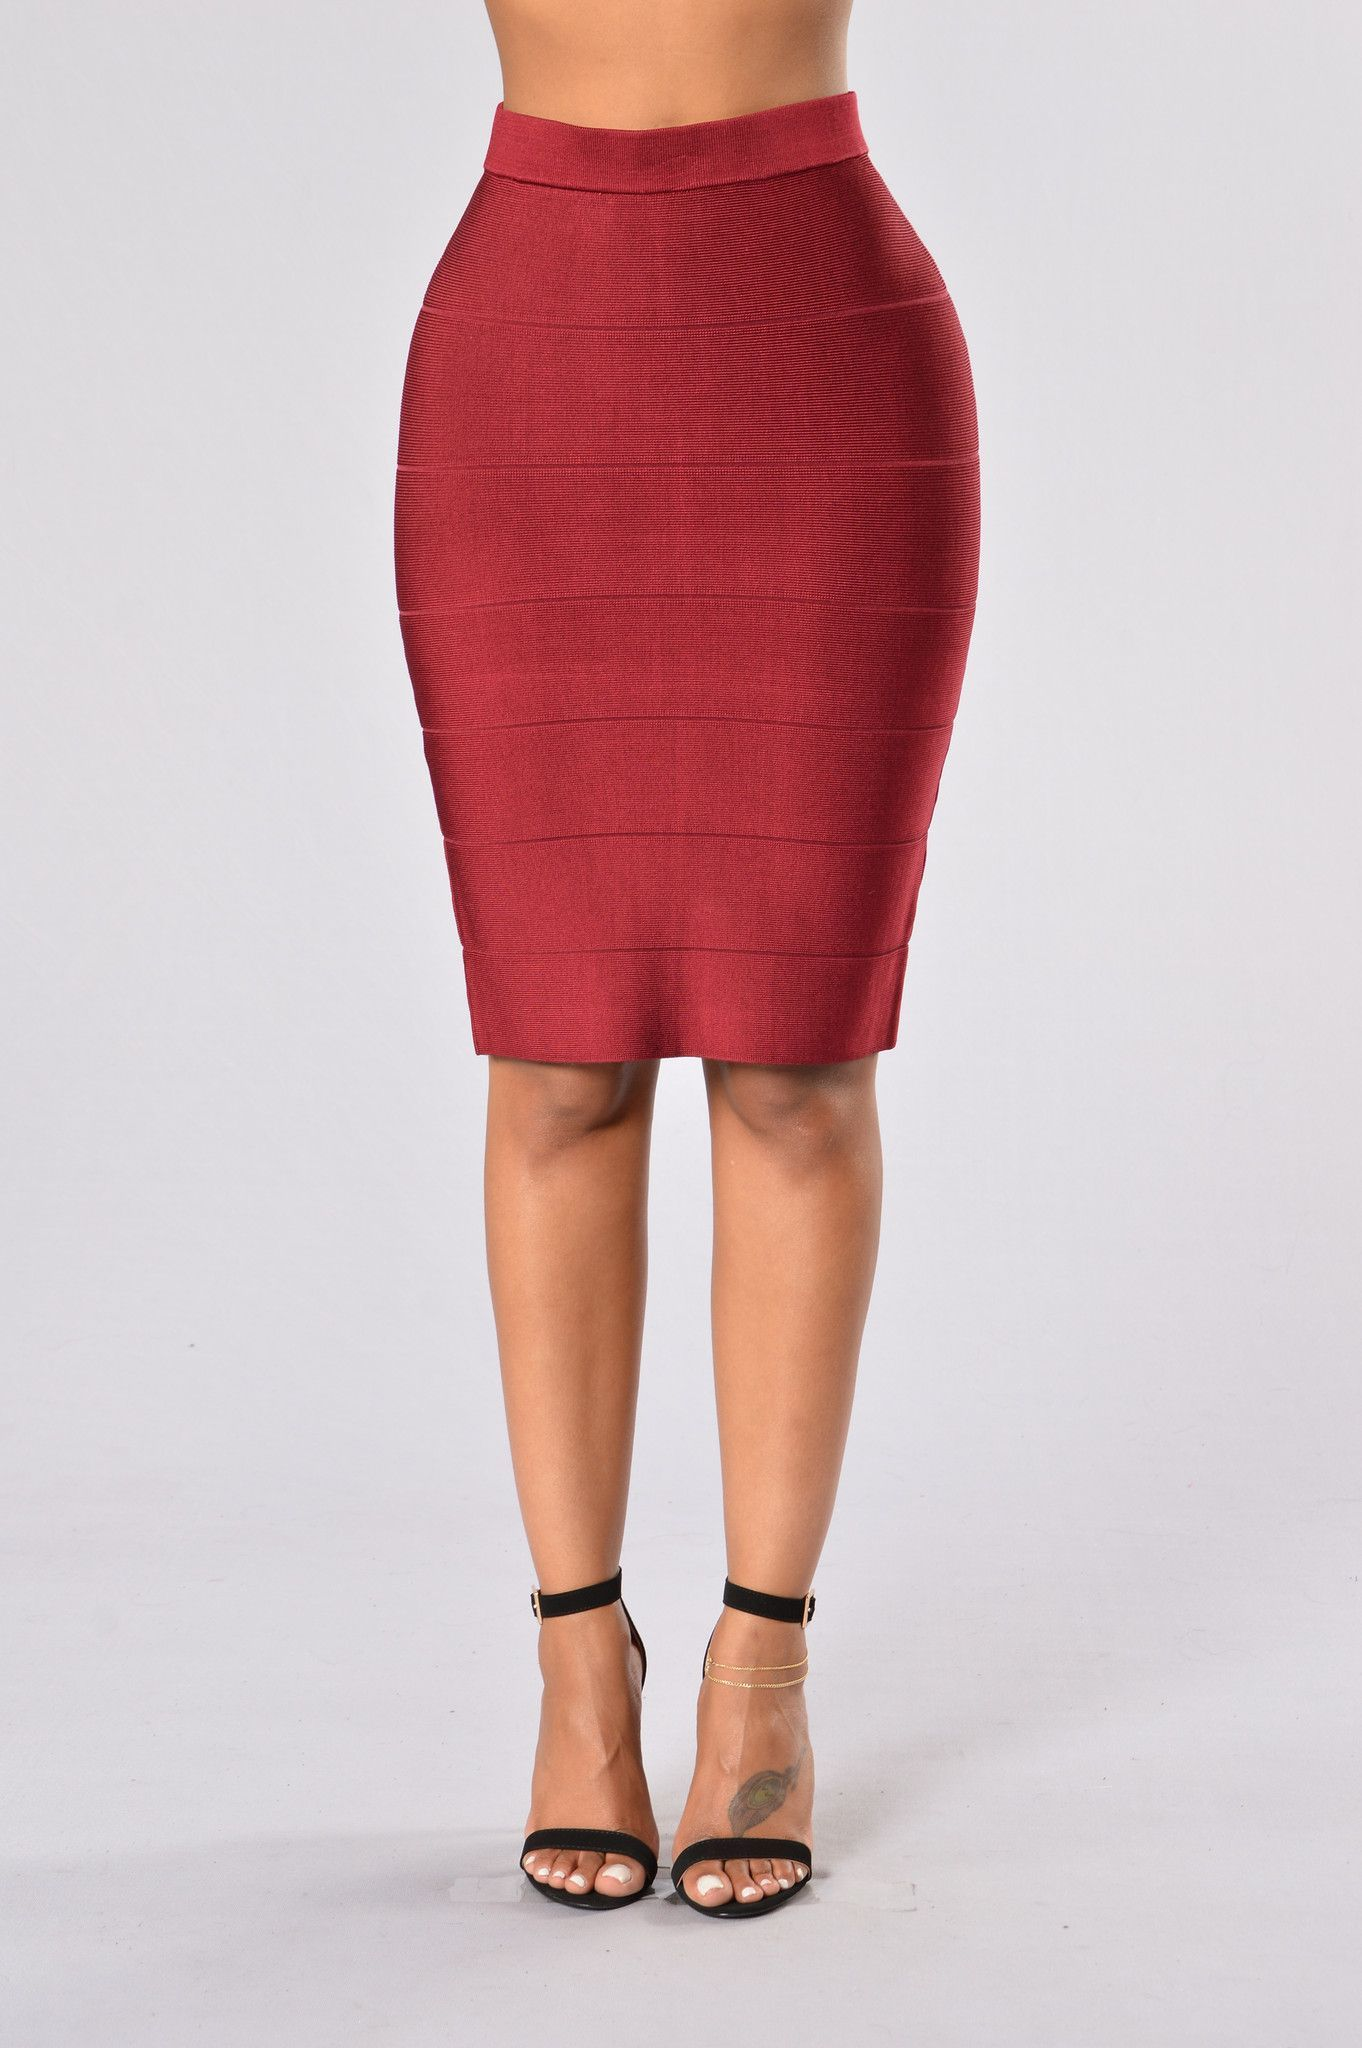 Fit To Me Bandage Skirt - Burgundy